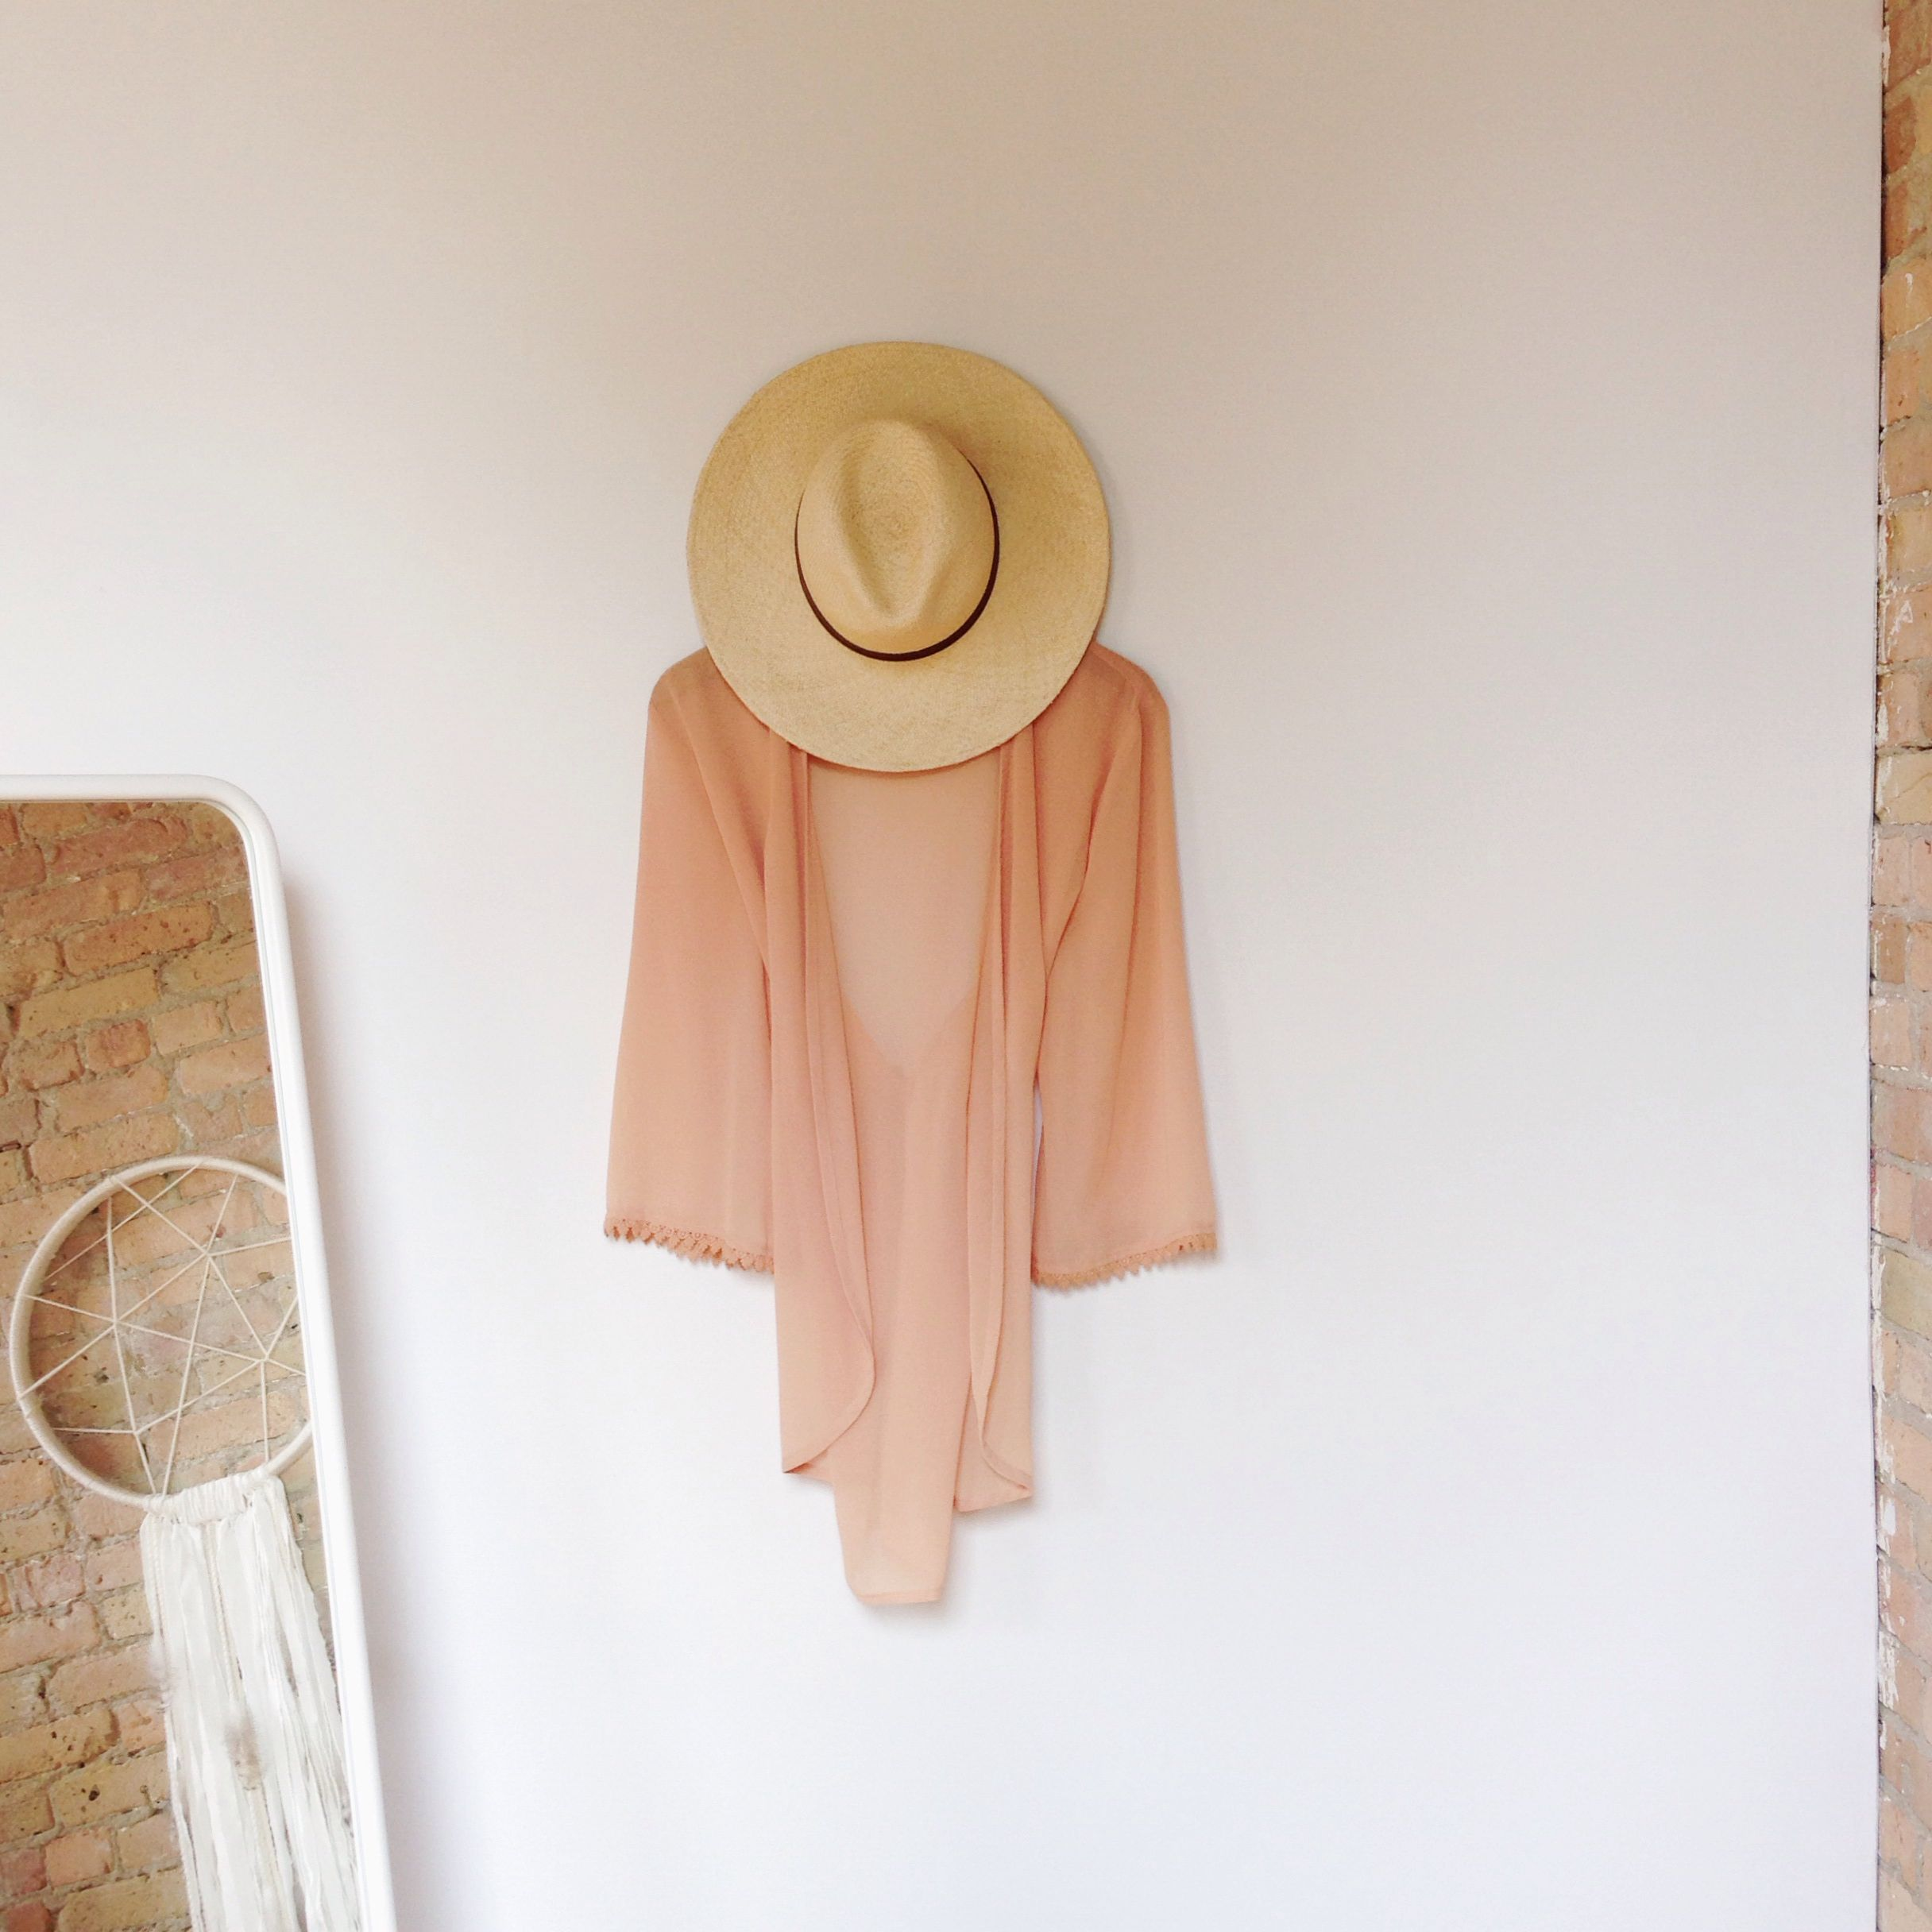 new markdowns including our georgia peach kimono   others include pom shorts + crochet tops + summer dresses   don't miss out! #shopvelvetmoon